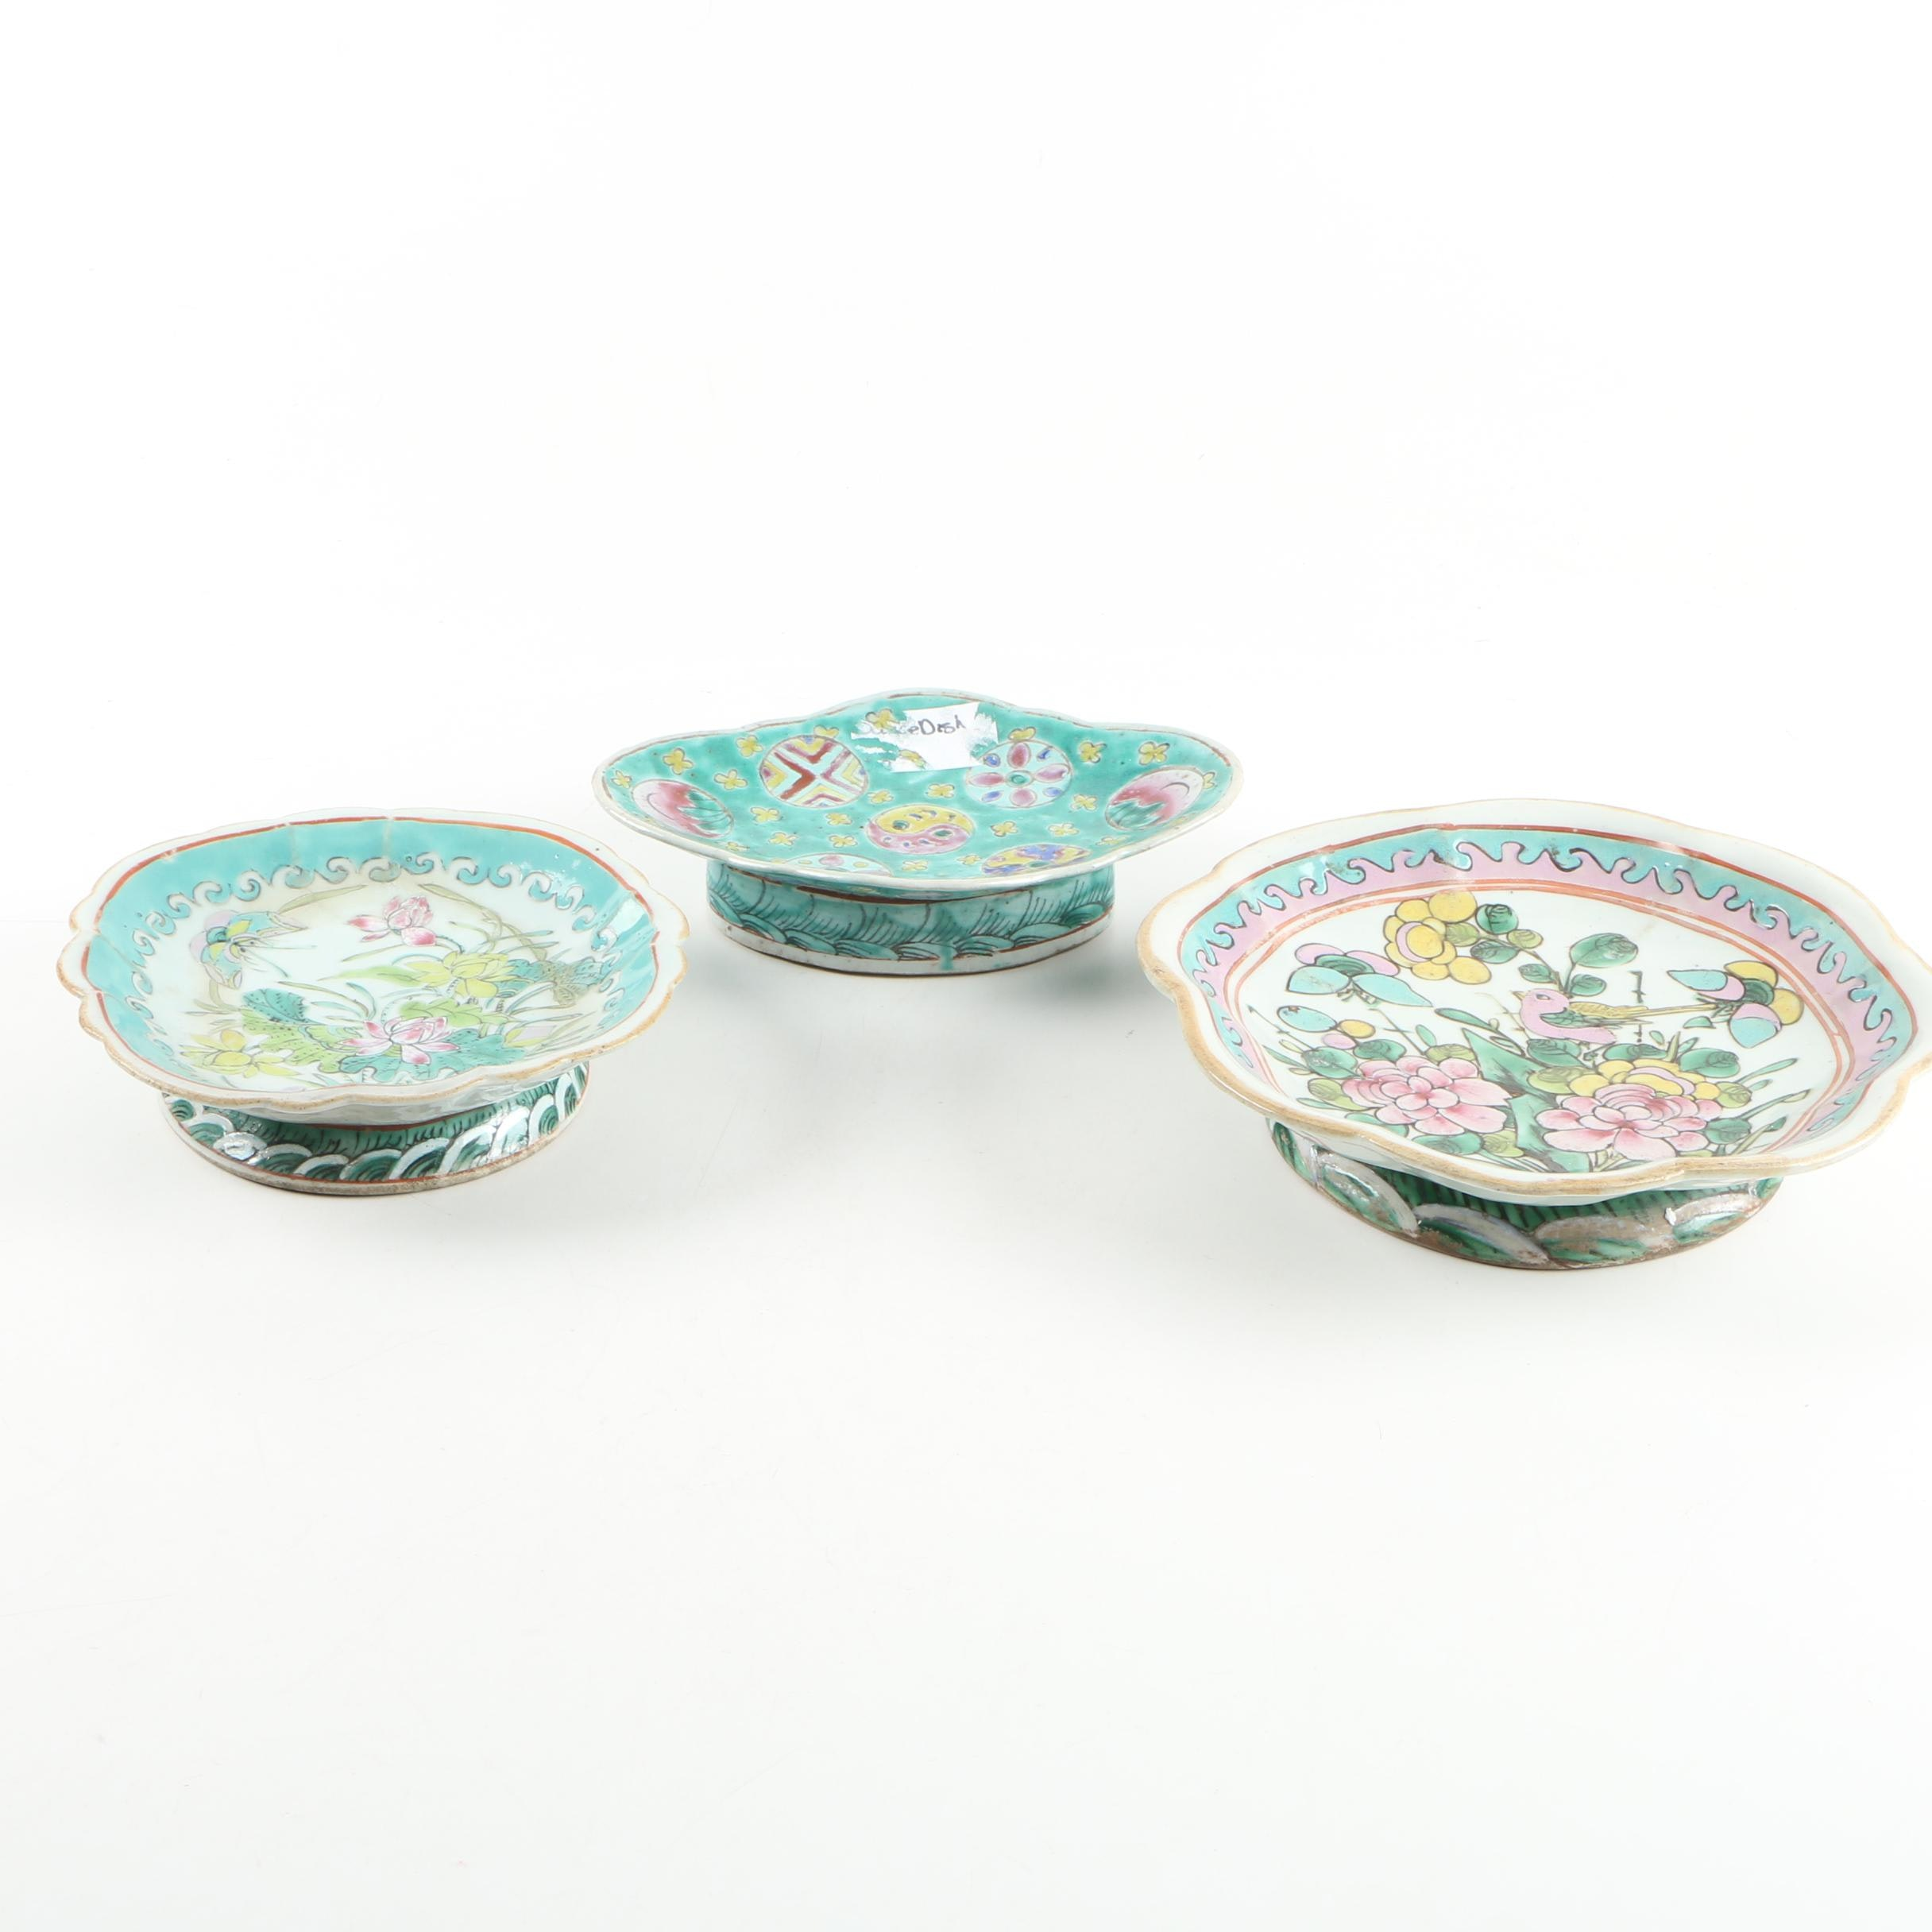 East Asian Porcelain Bowls